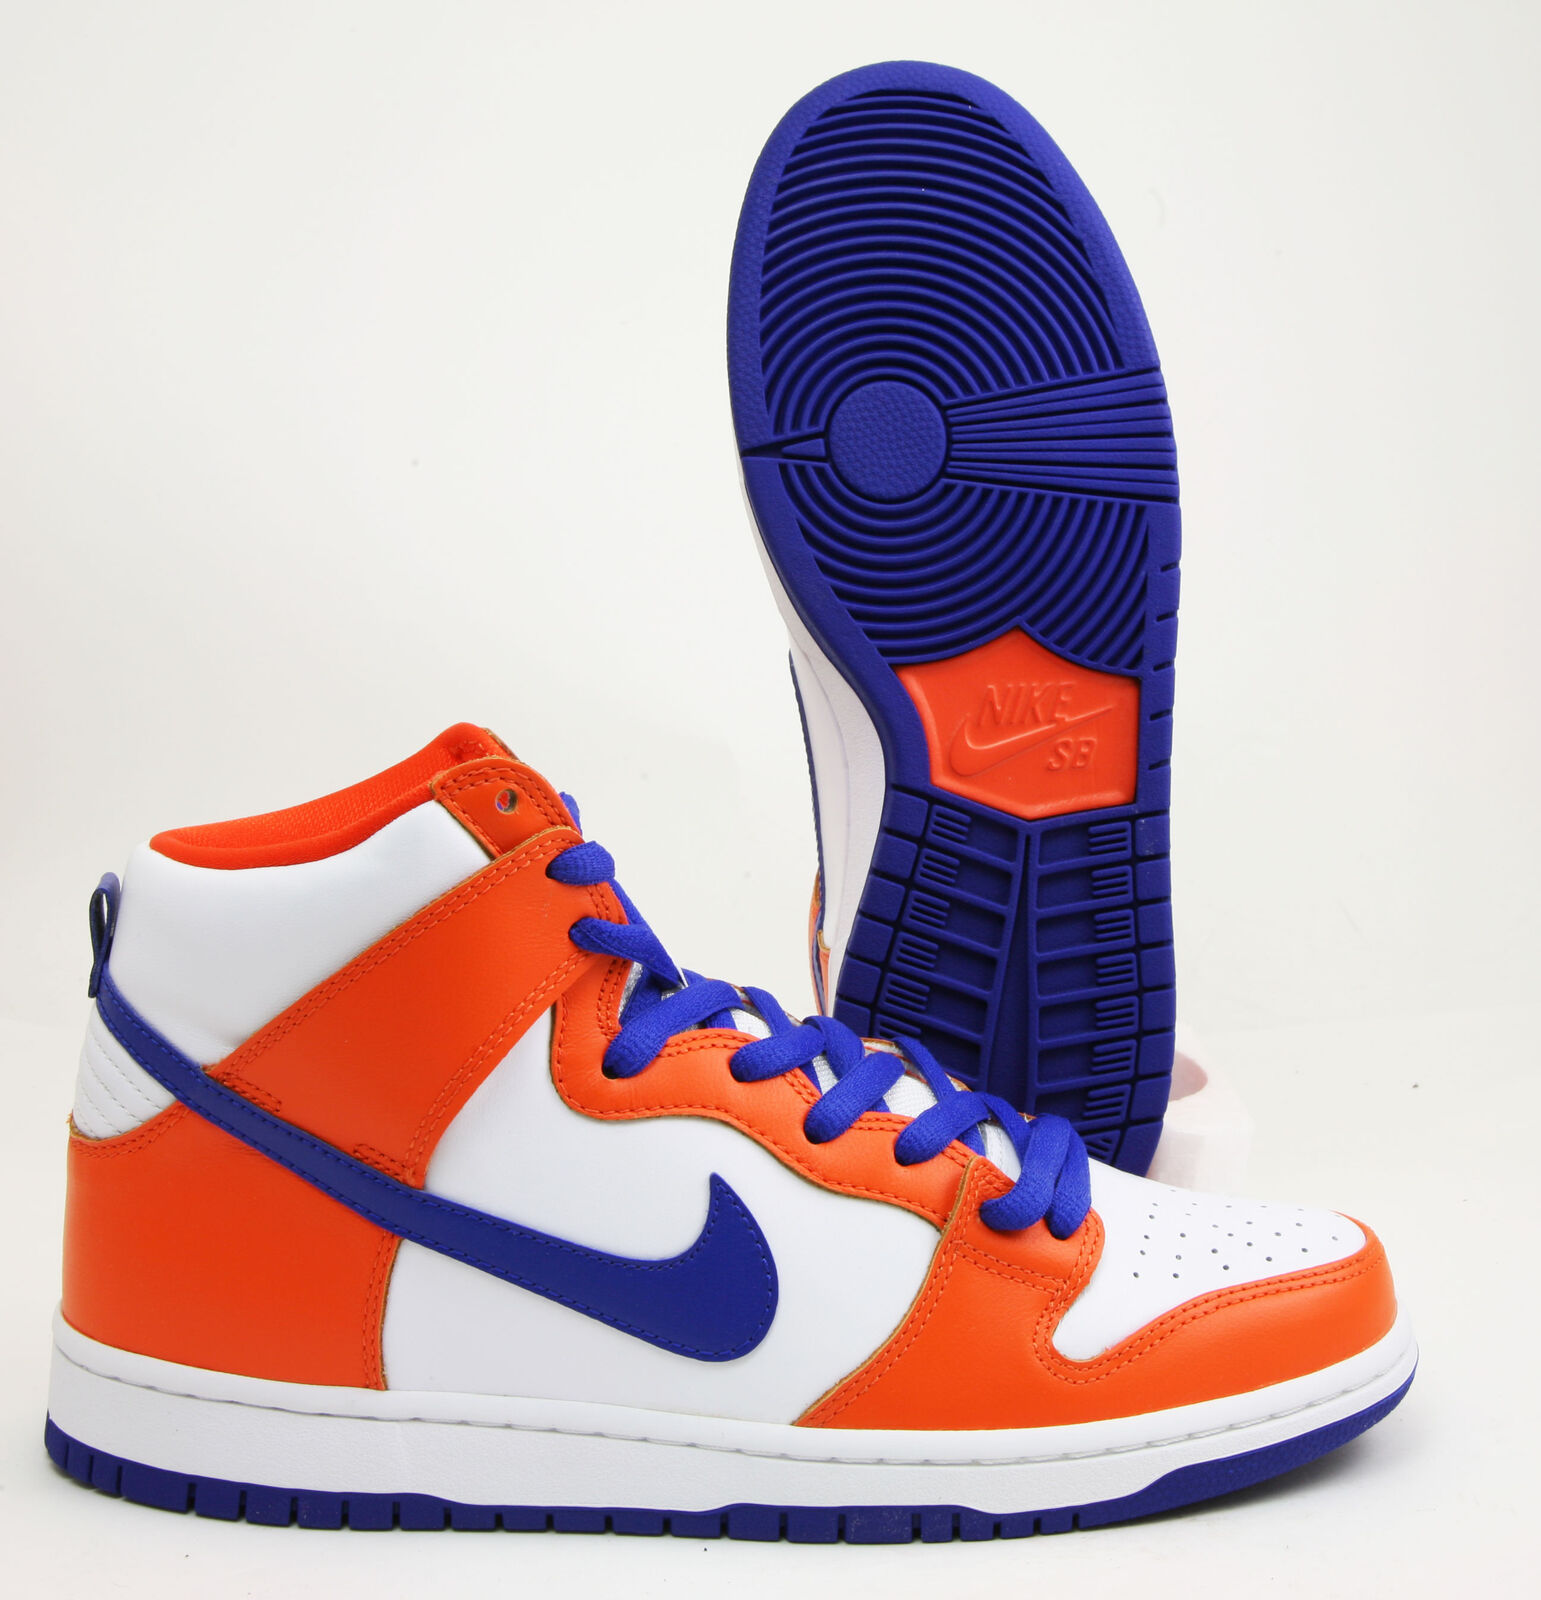 Nike SB Safety Dunk High TRD QS Safety SB Orange Hyper Blue White Limited Supply AH0471841 6cb38a